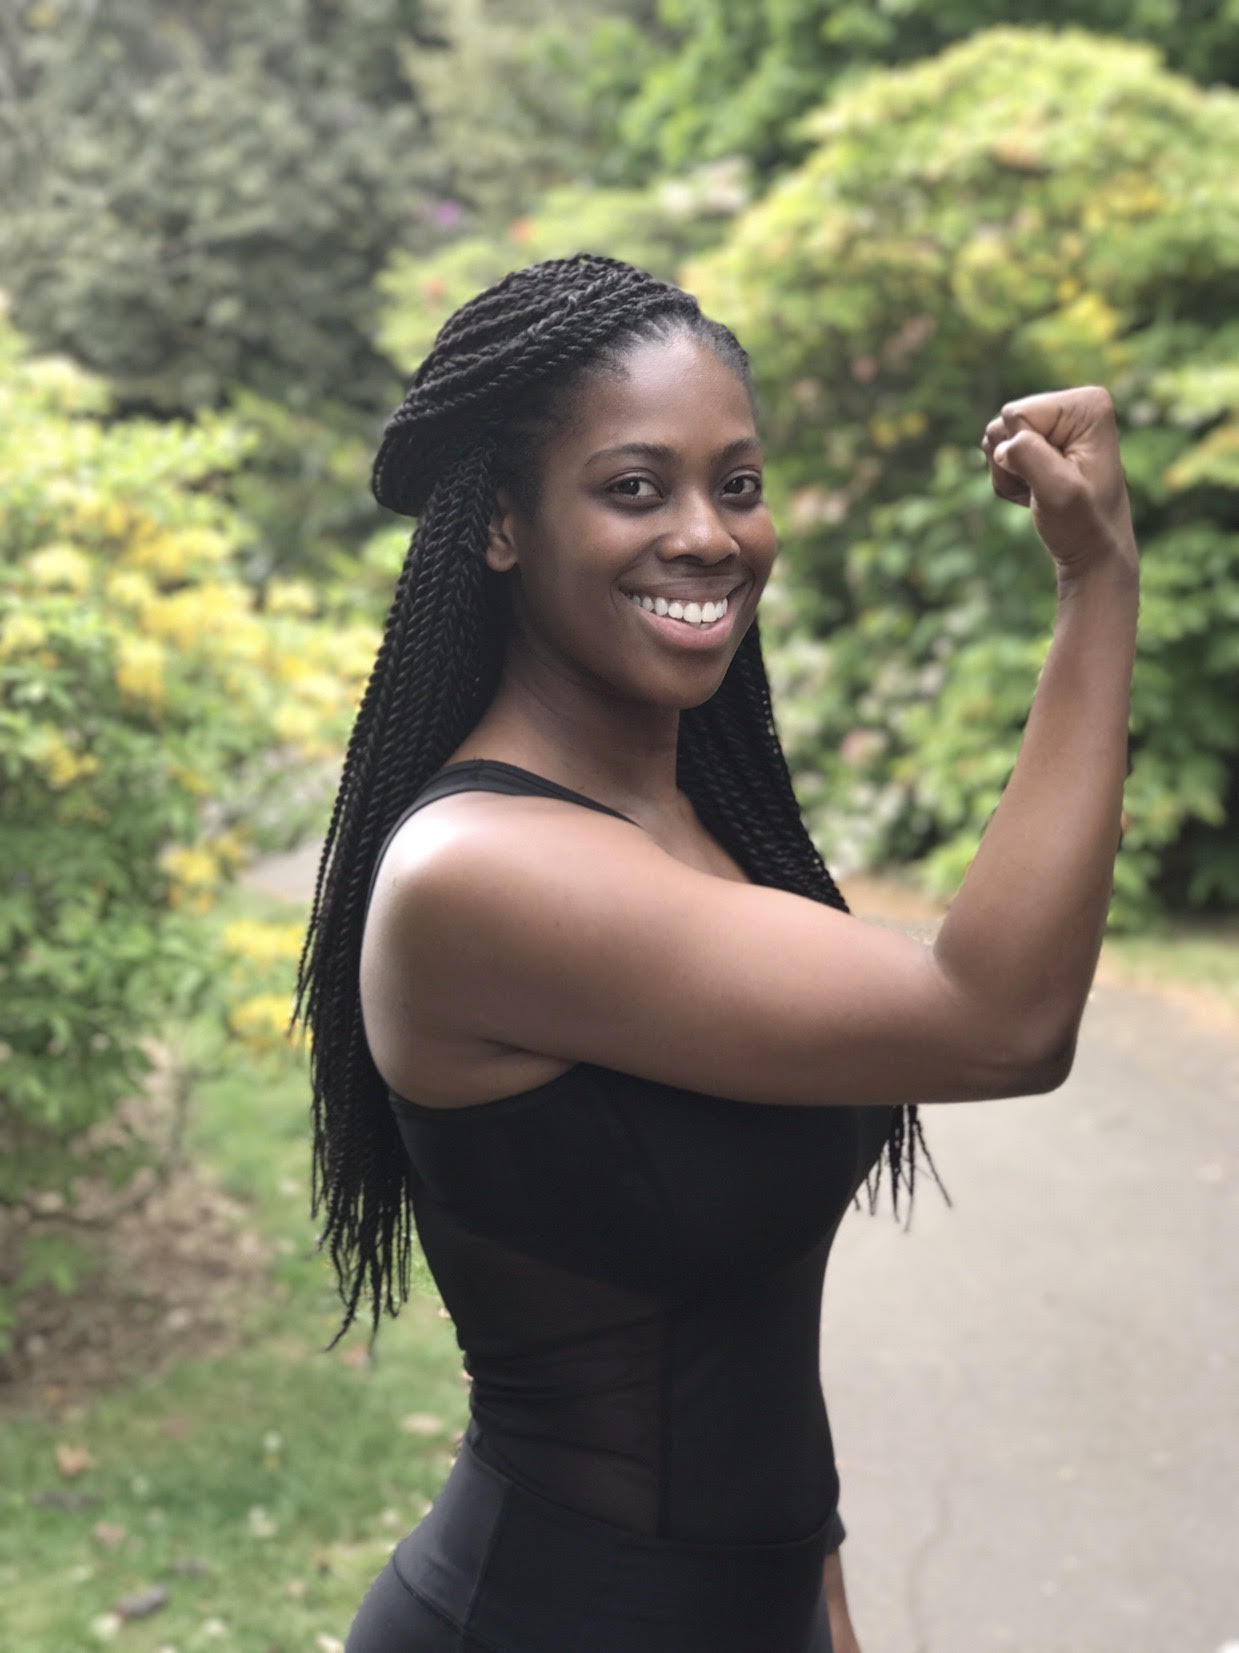 Zora is a Body Transformation Specialist and Personal Trainer based in London. She is passionate about unleashing women's inner warriors. For food and fitness inspiration check out her blog ( zorafitness.co.uk ) or Instagram (@zorafitness).